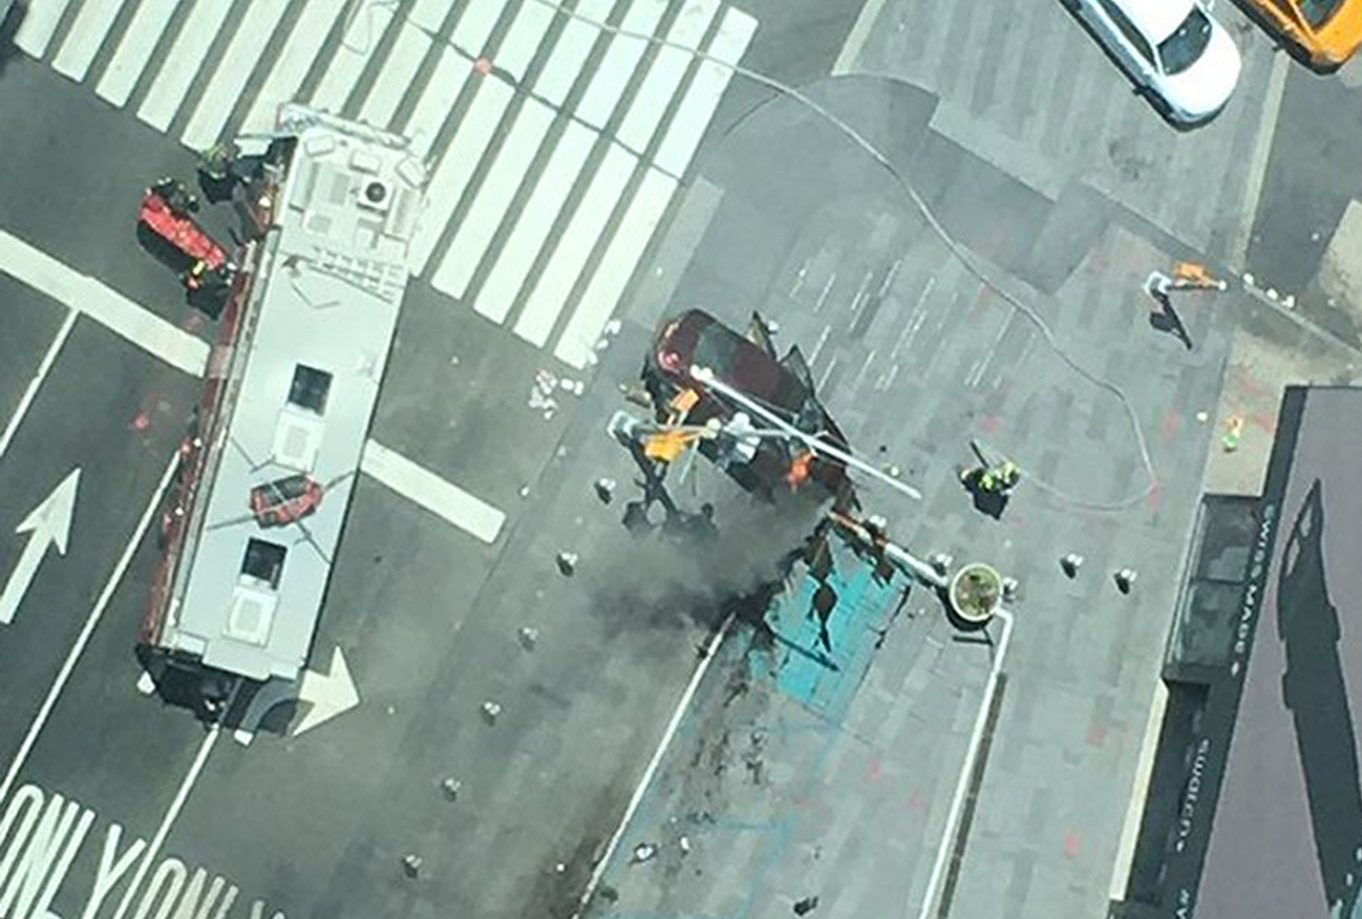 Picture taken with permission from the twitter feed of @chrisreinder of the incident in Times Square, New York, USA.